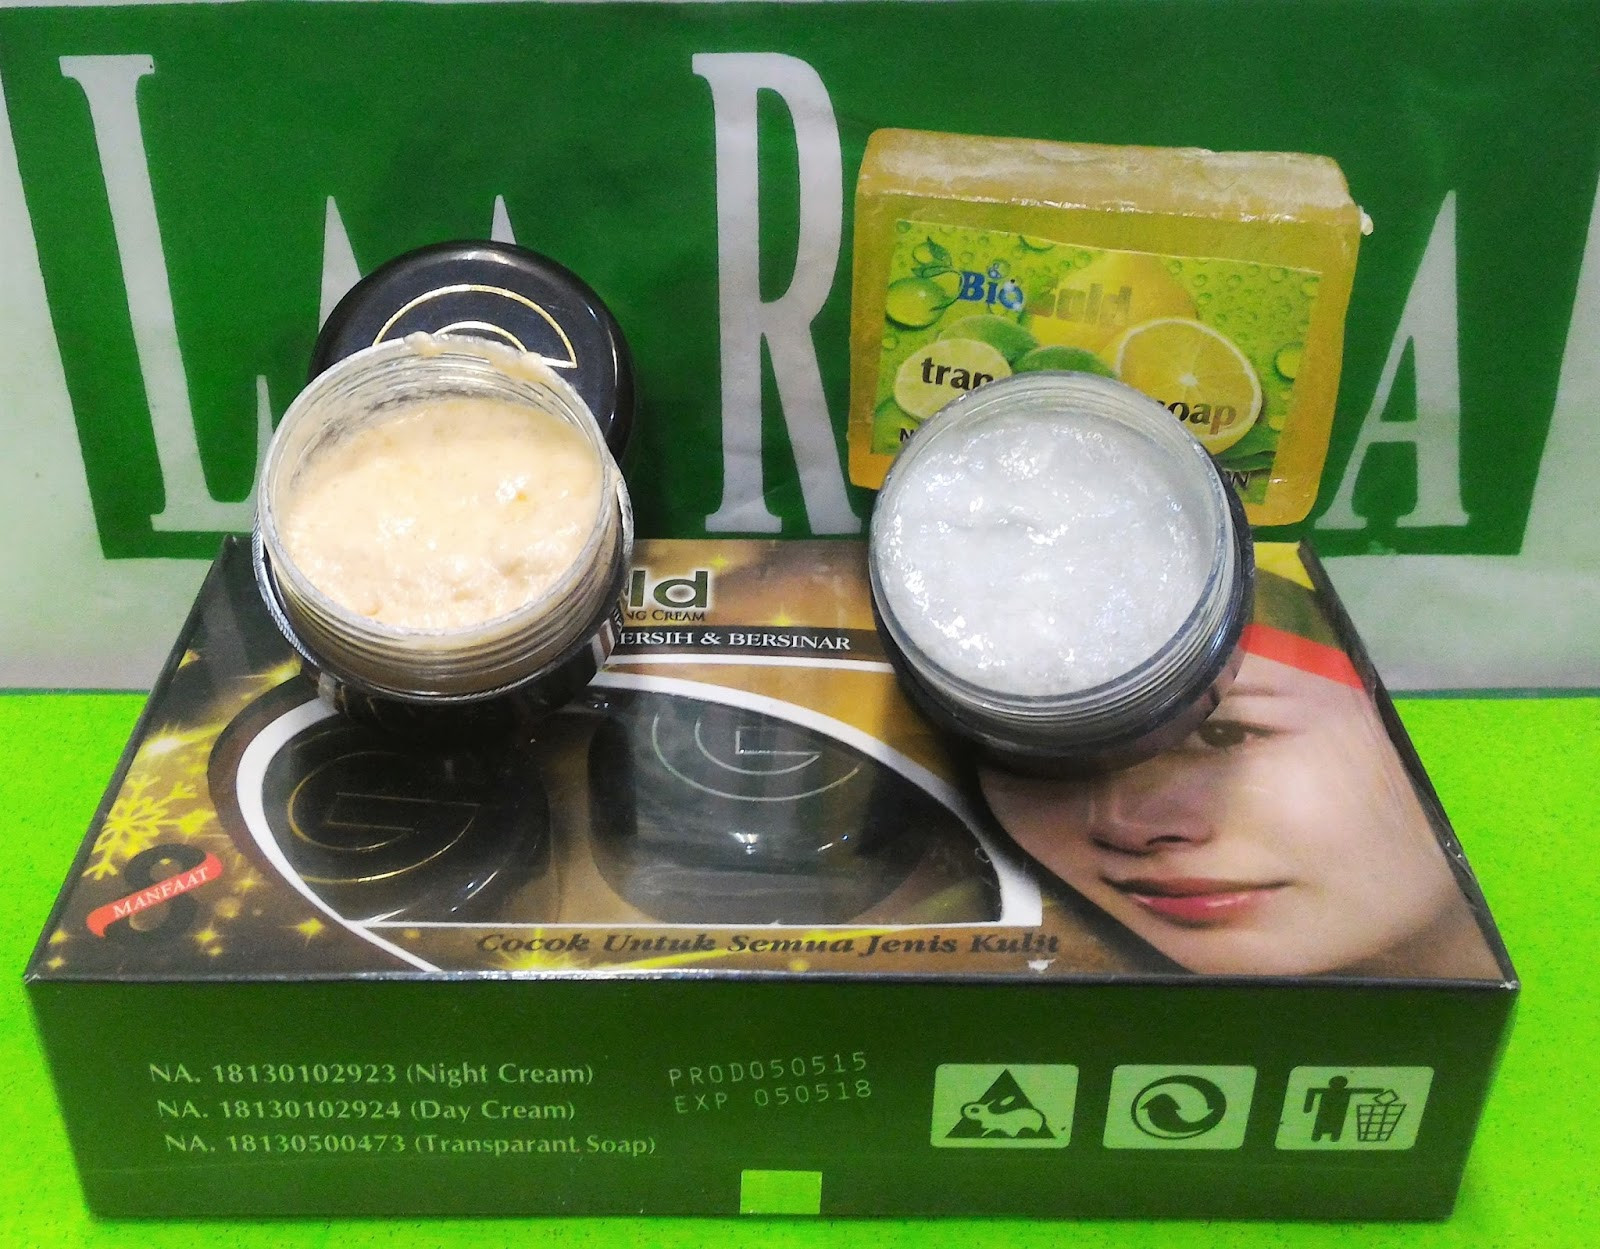 Manfaat Bio Gold Cream